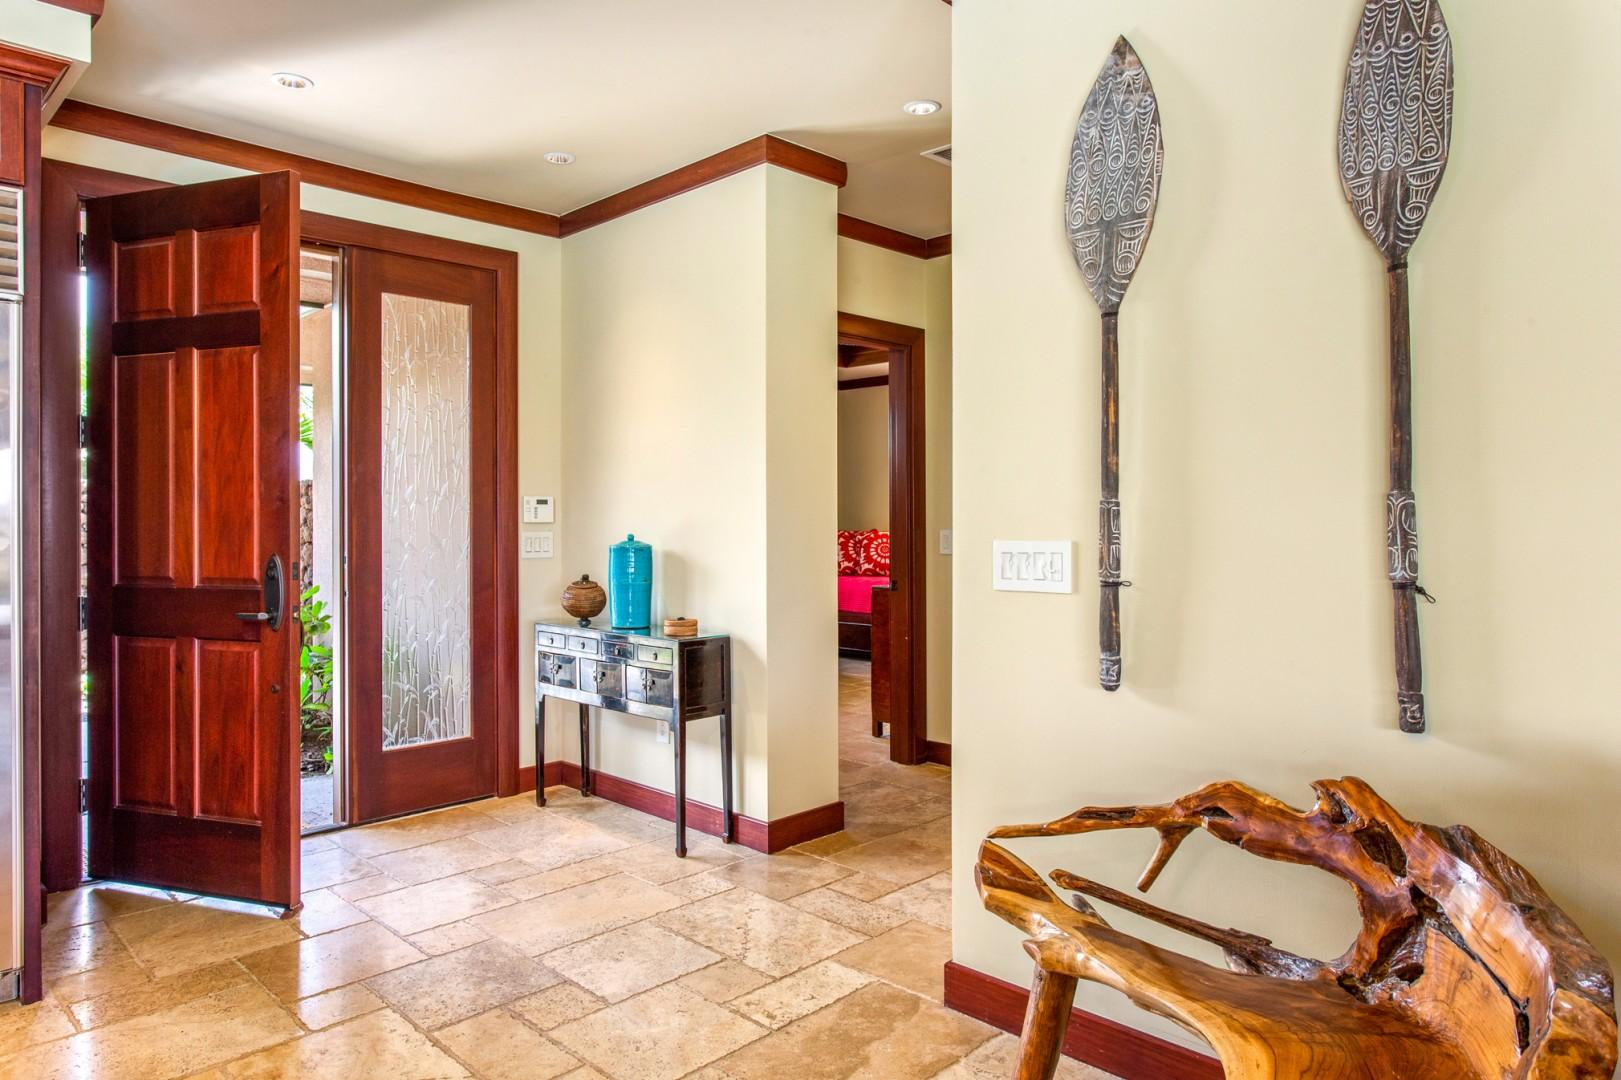 A grand entry door and Hawaiian wall hangings welcome you to your paradise oasis.